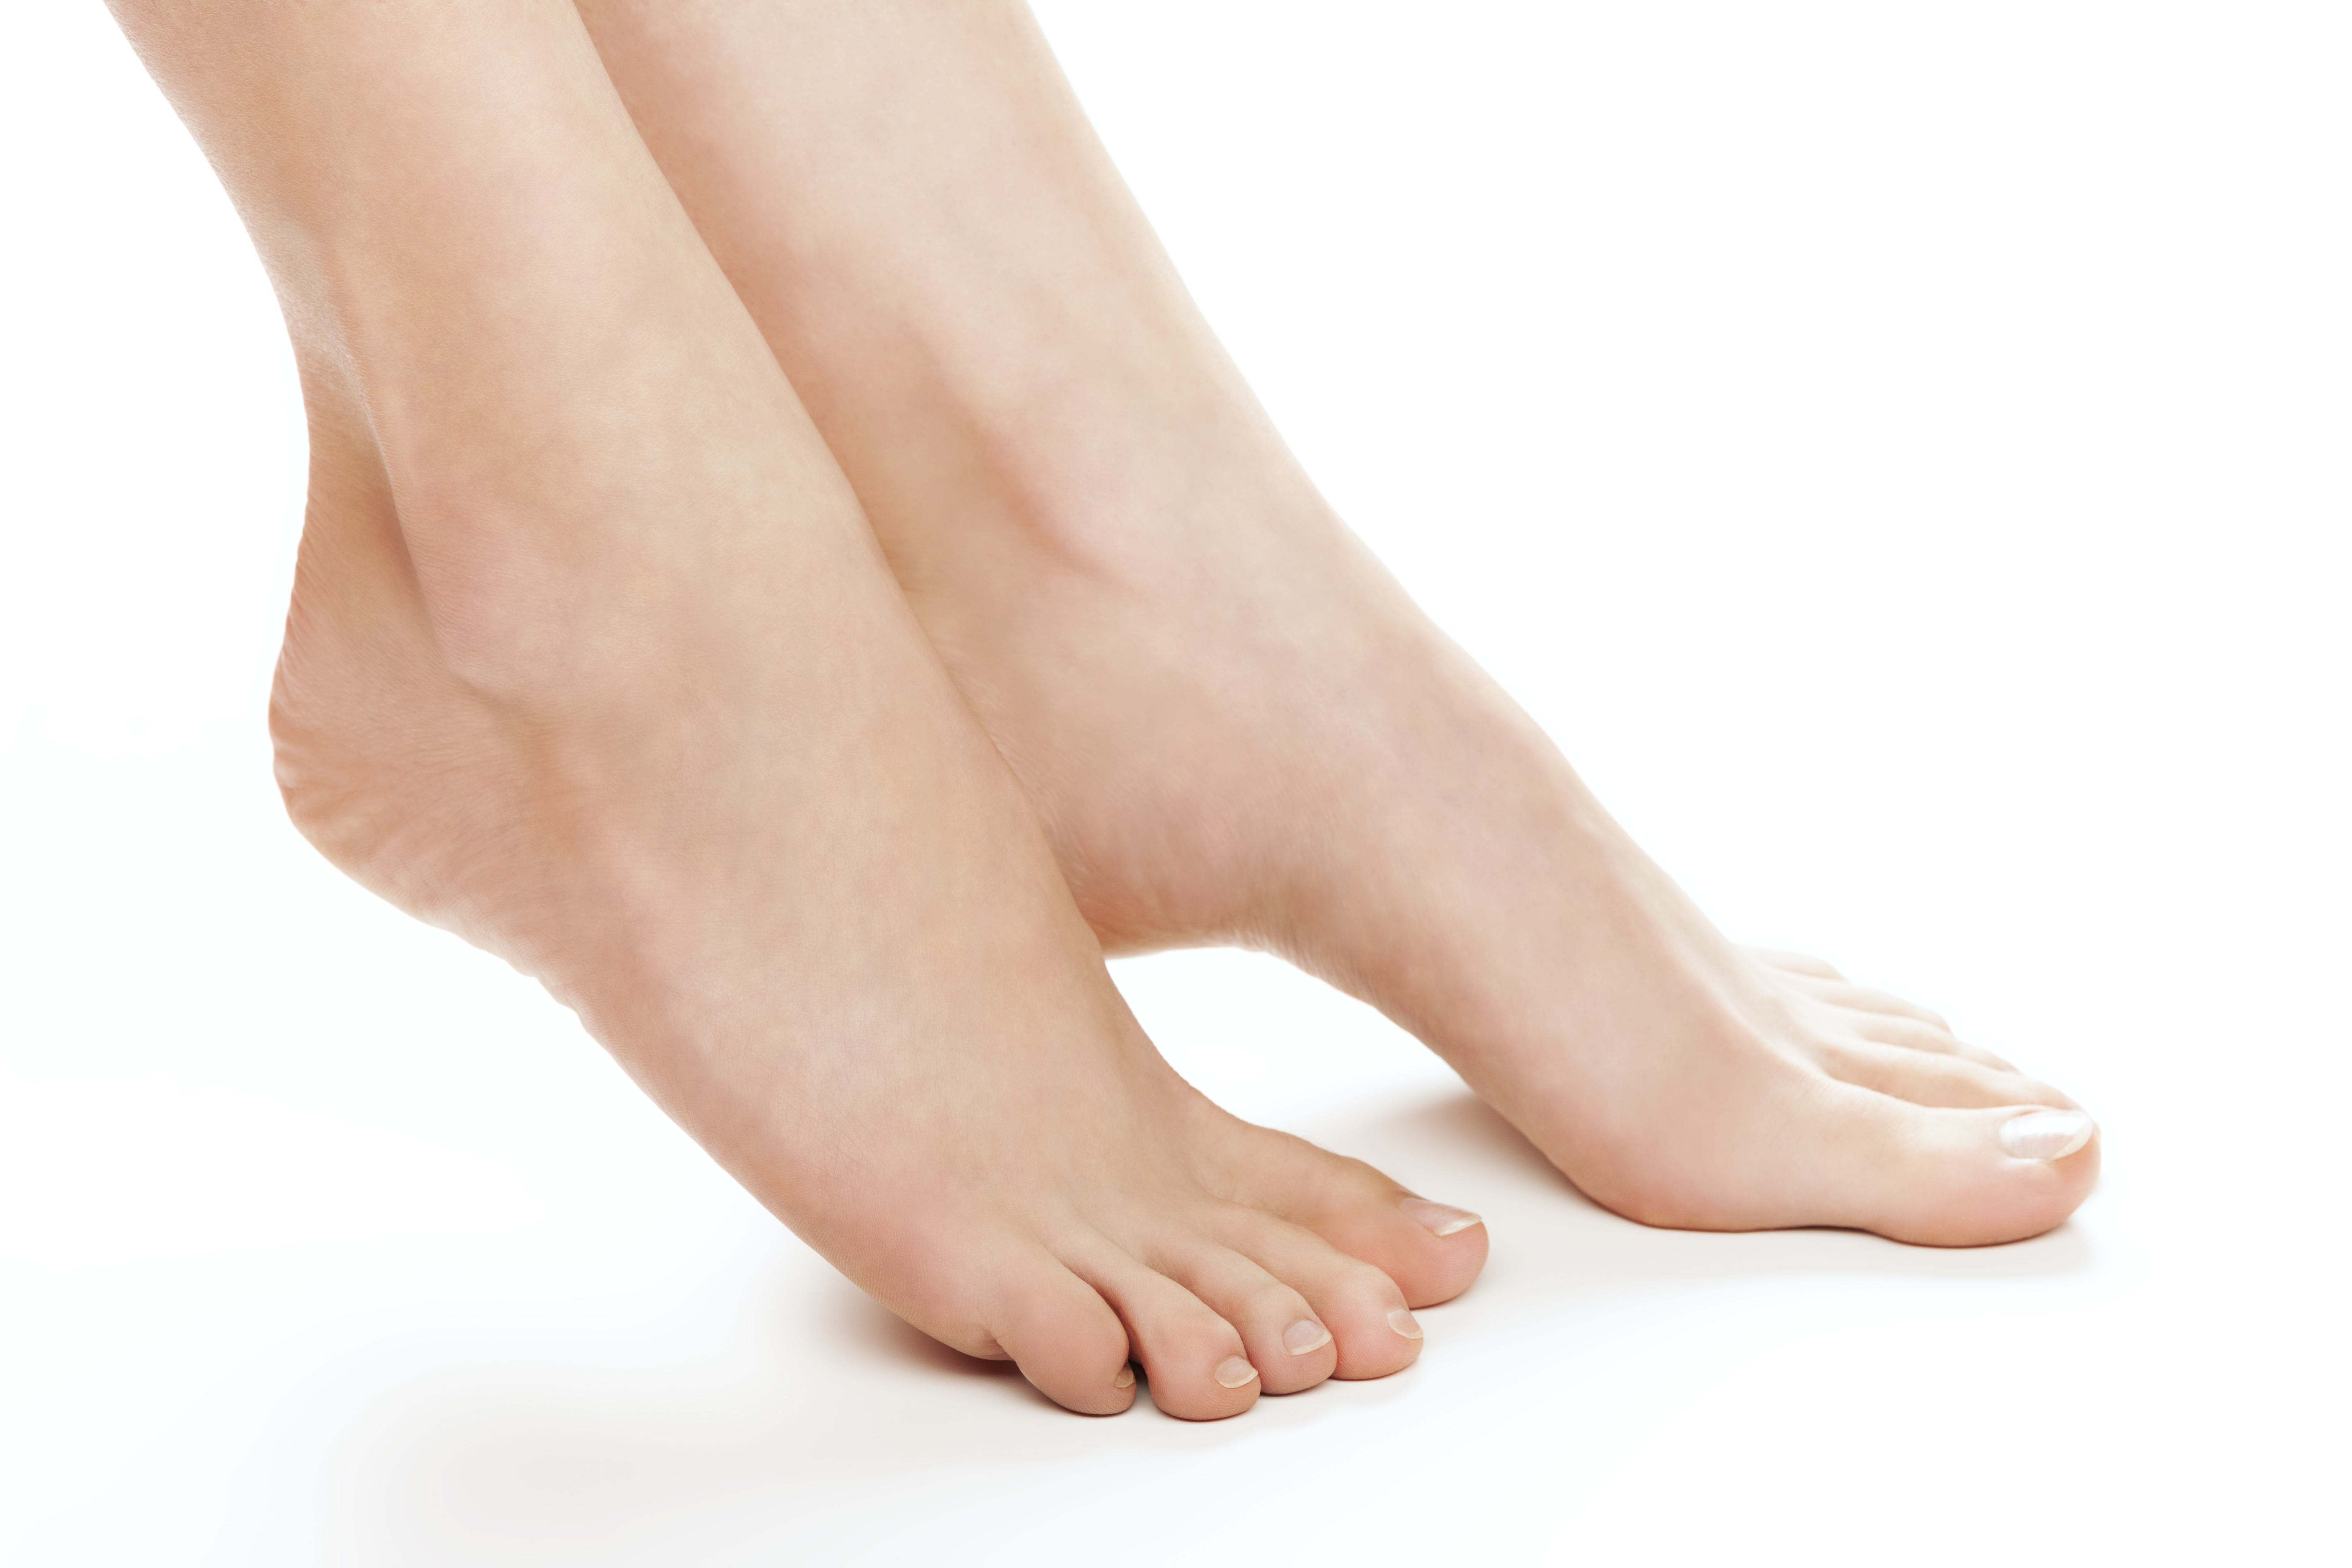 Feet Pics, Photography Collection